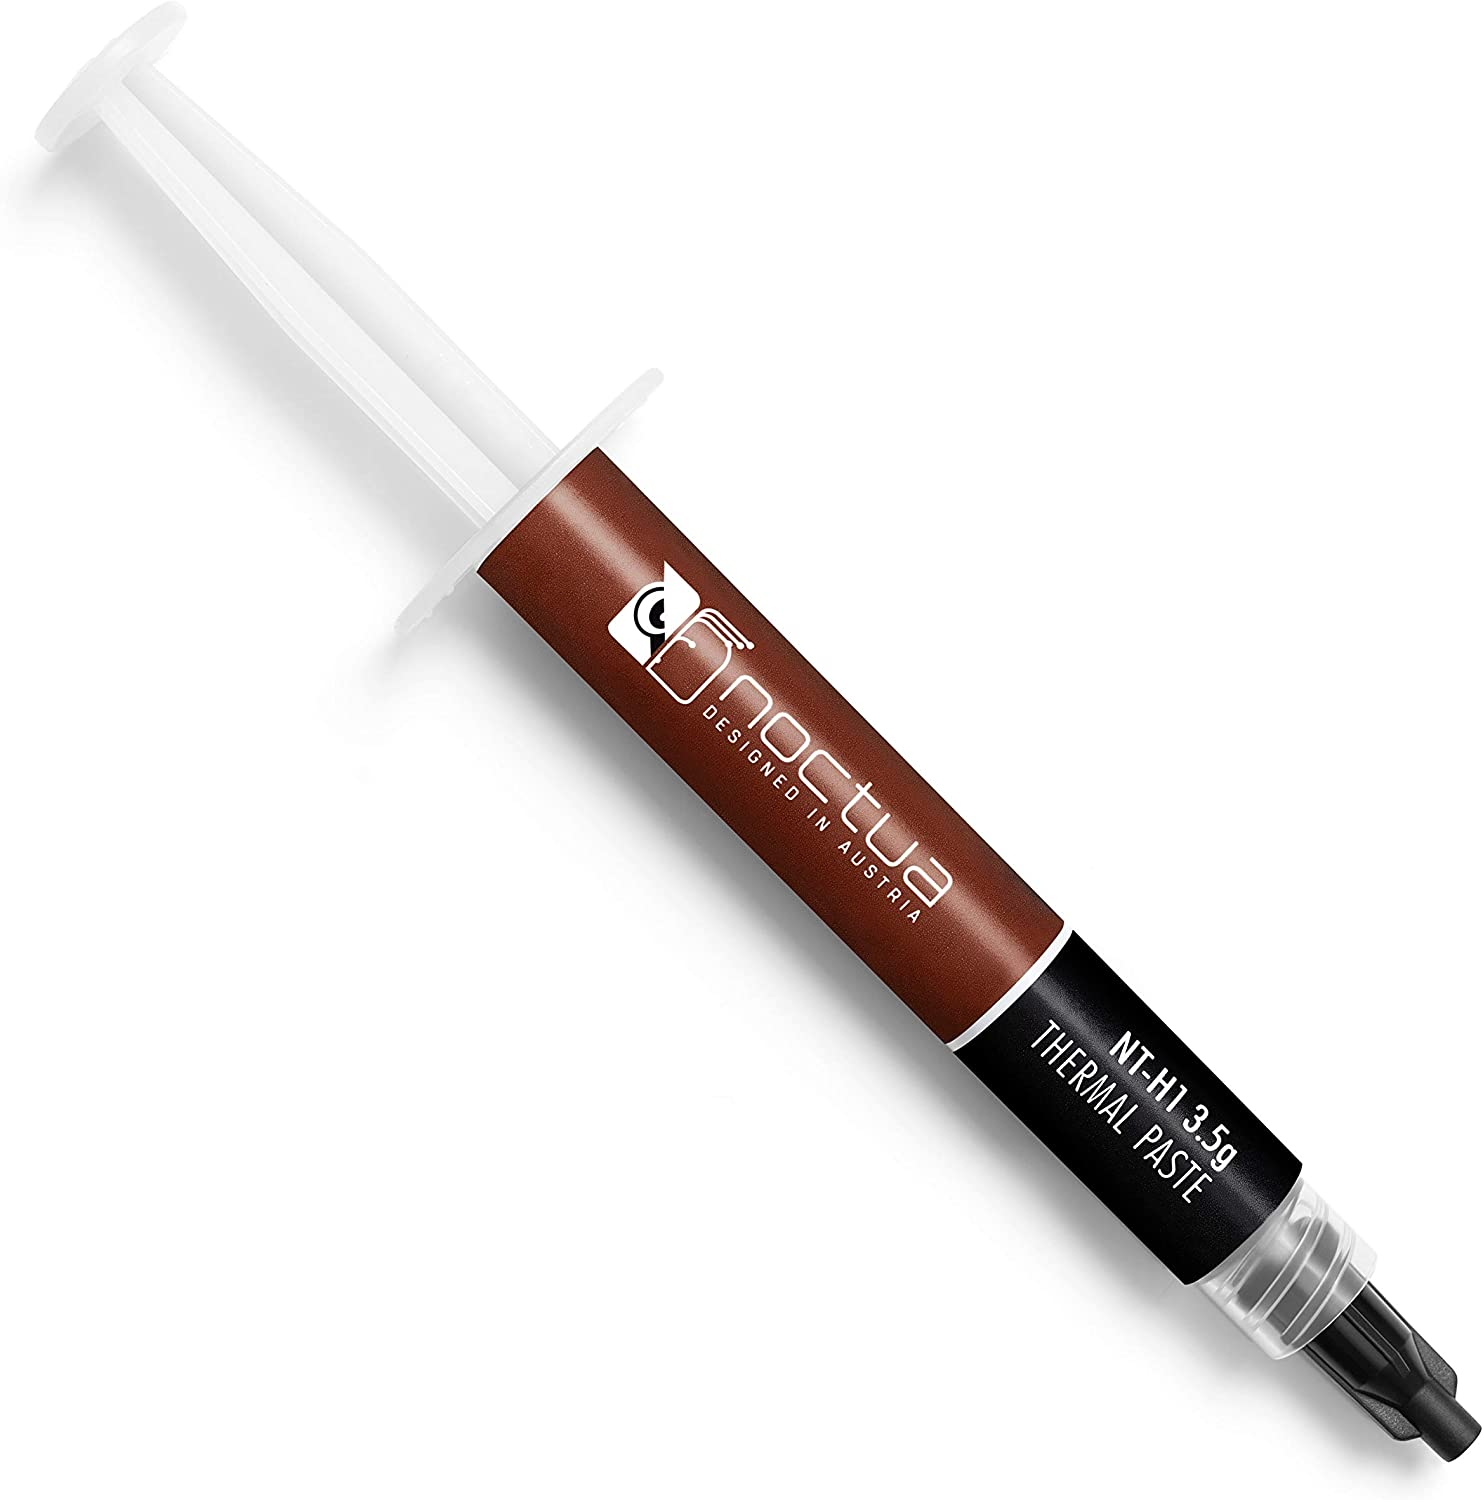 Noctua NT-H1 Pro-Grade Thermal Compound Paste (Gray) 1.4 ml, 3.5g